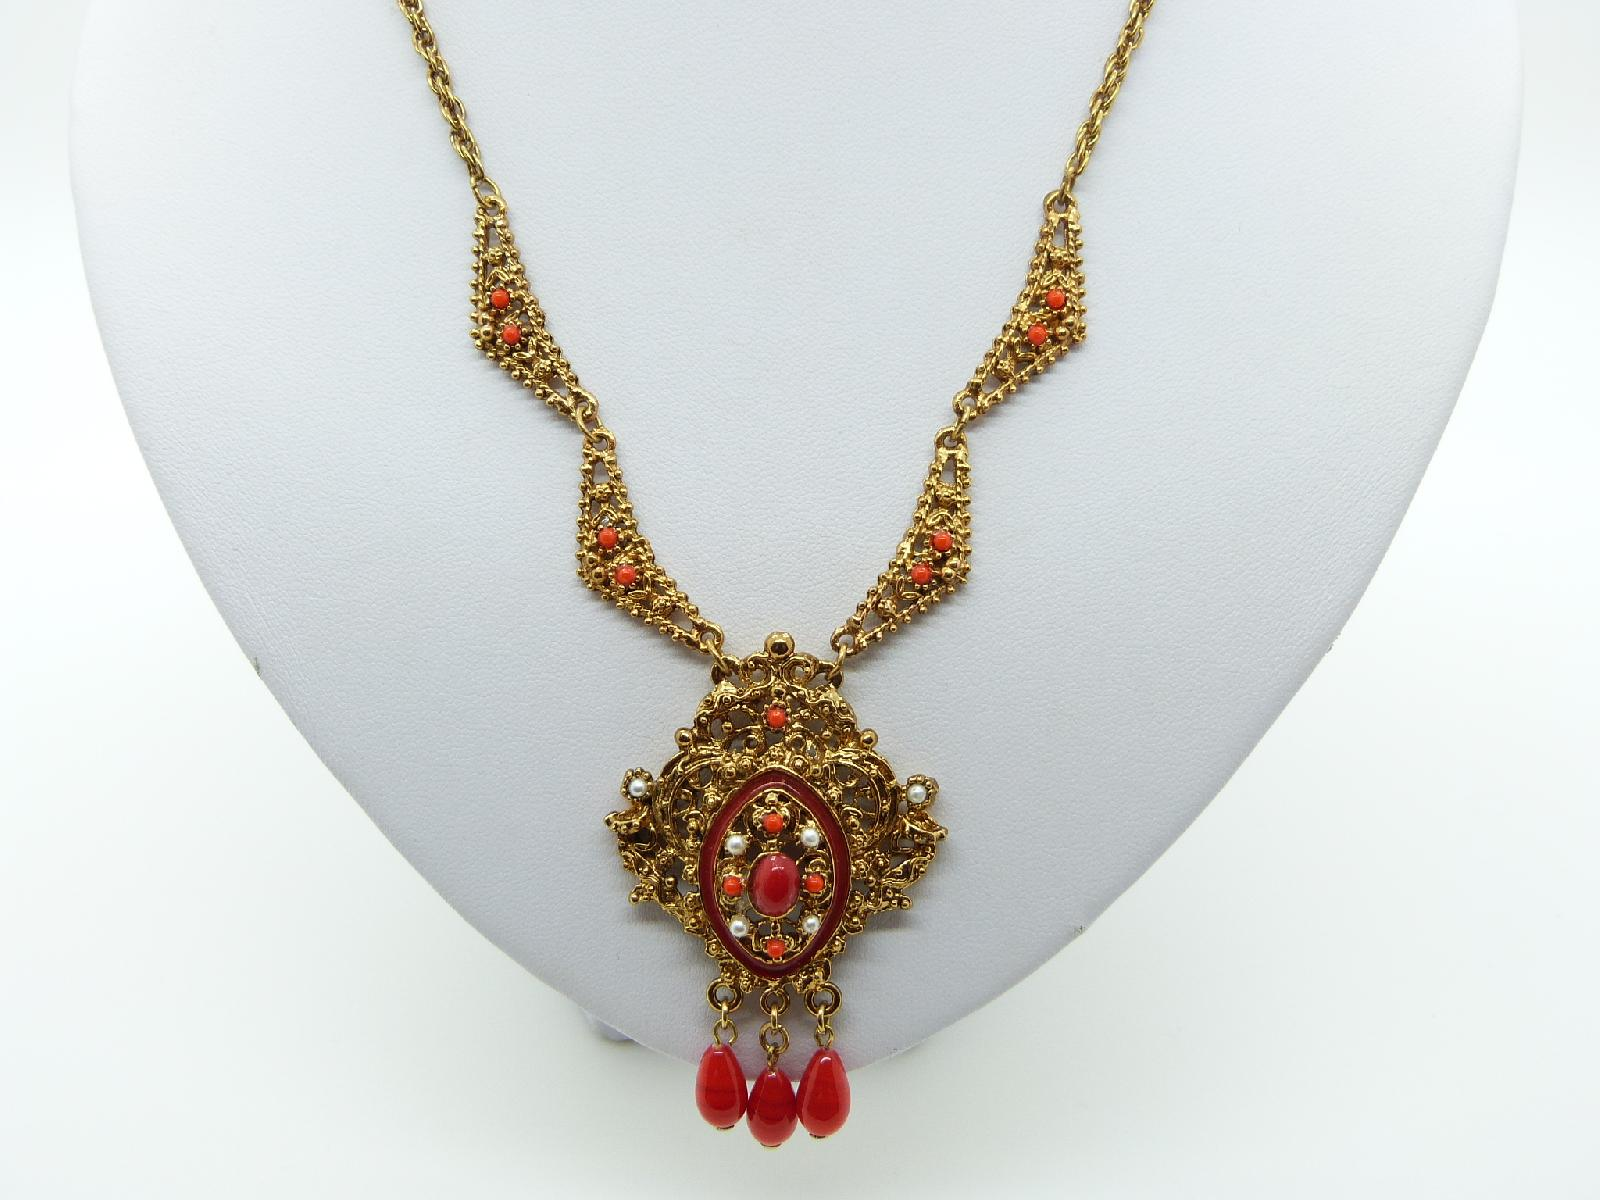 Vintage 60s Filigree Goldtone Red Glass and Pearl Dropper Pendant Necklace